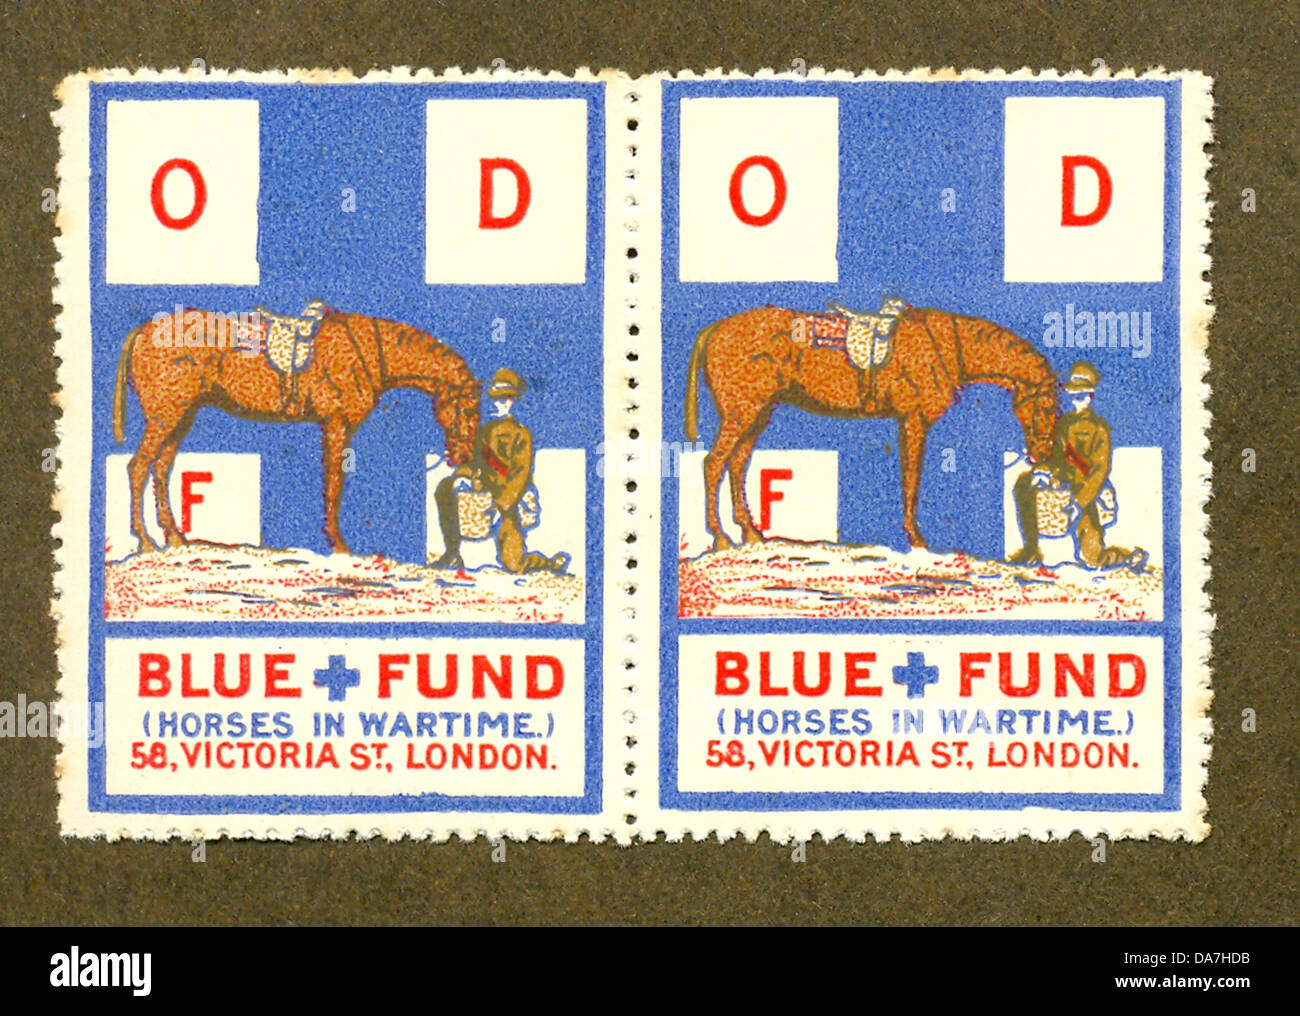 World War One Blue Cross charity sticker for army horses - Stock Image